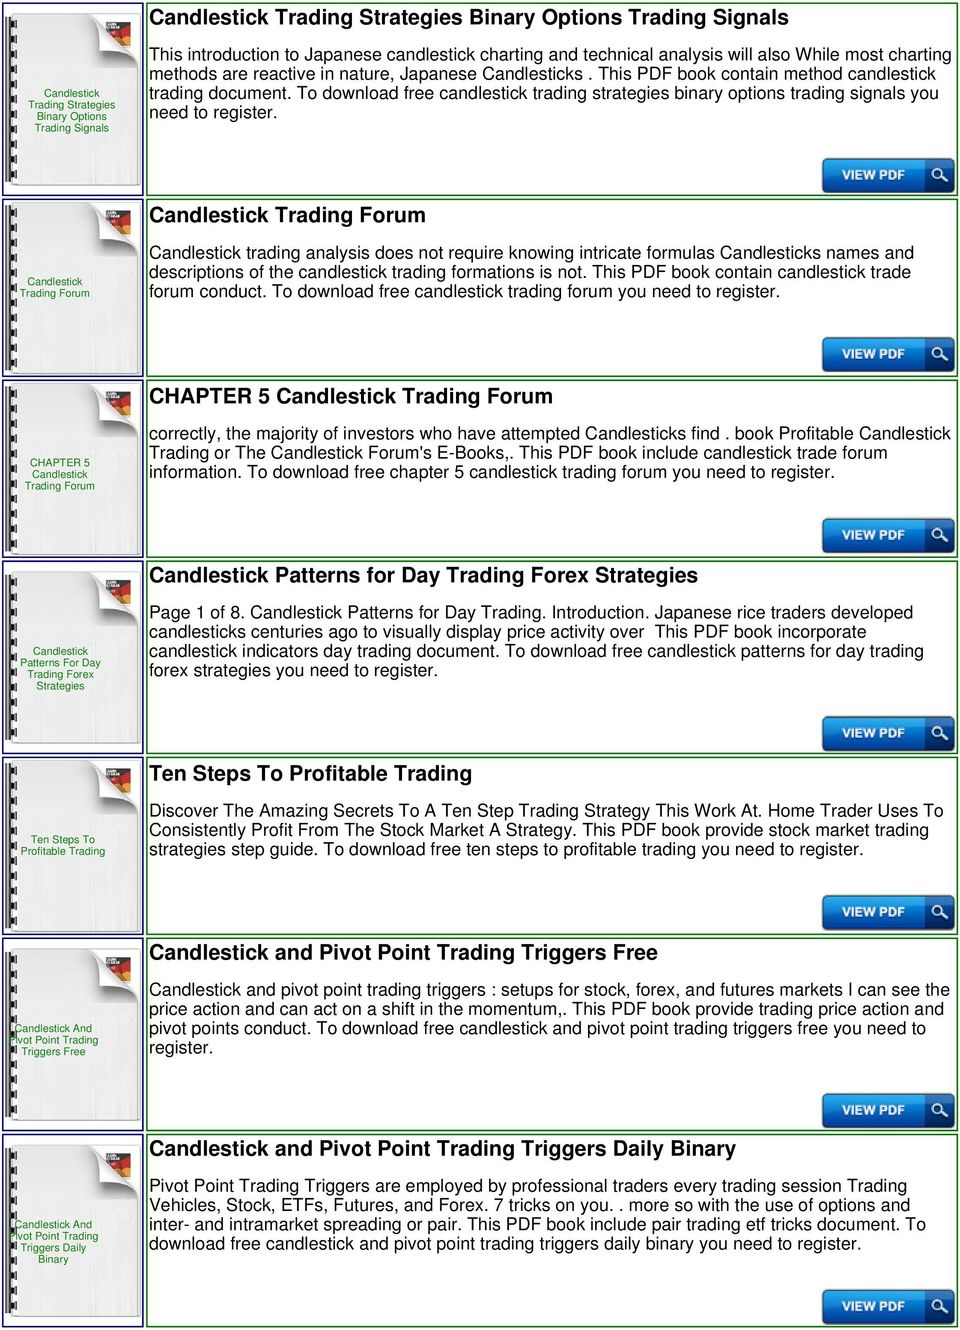 stock trading for dummies pdf free download